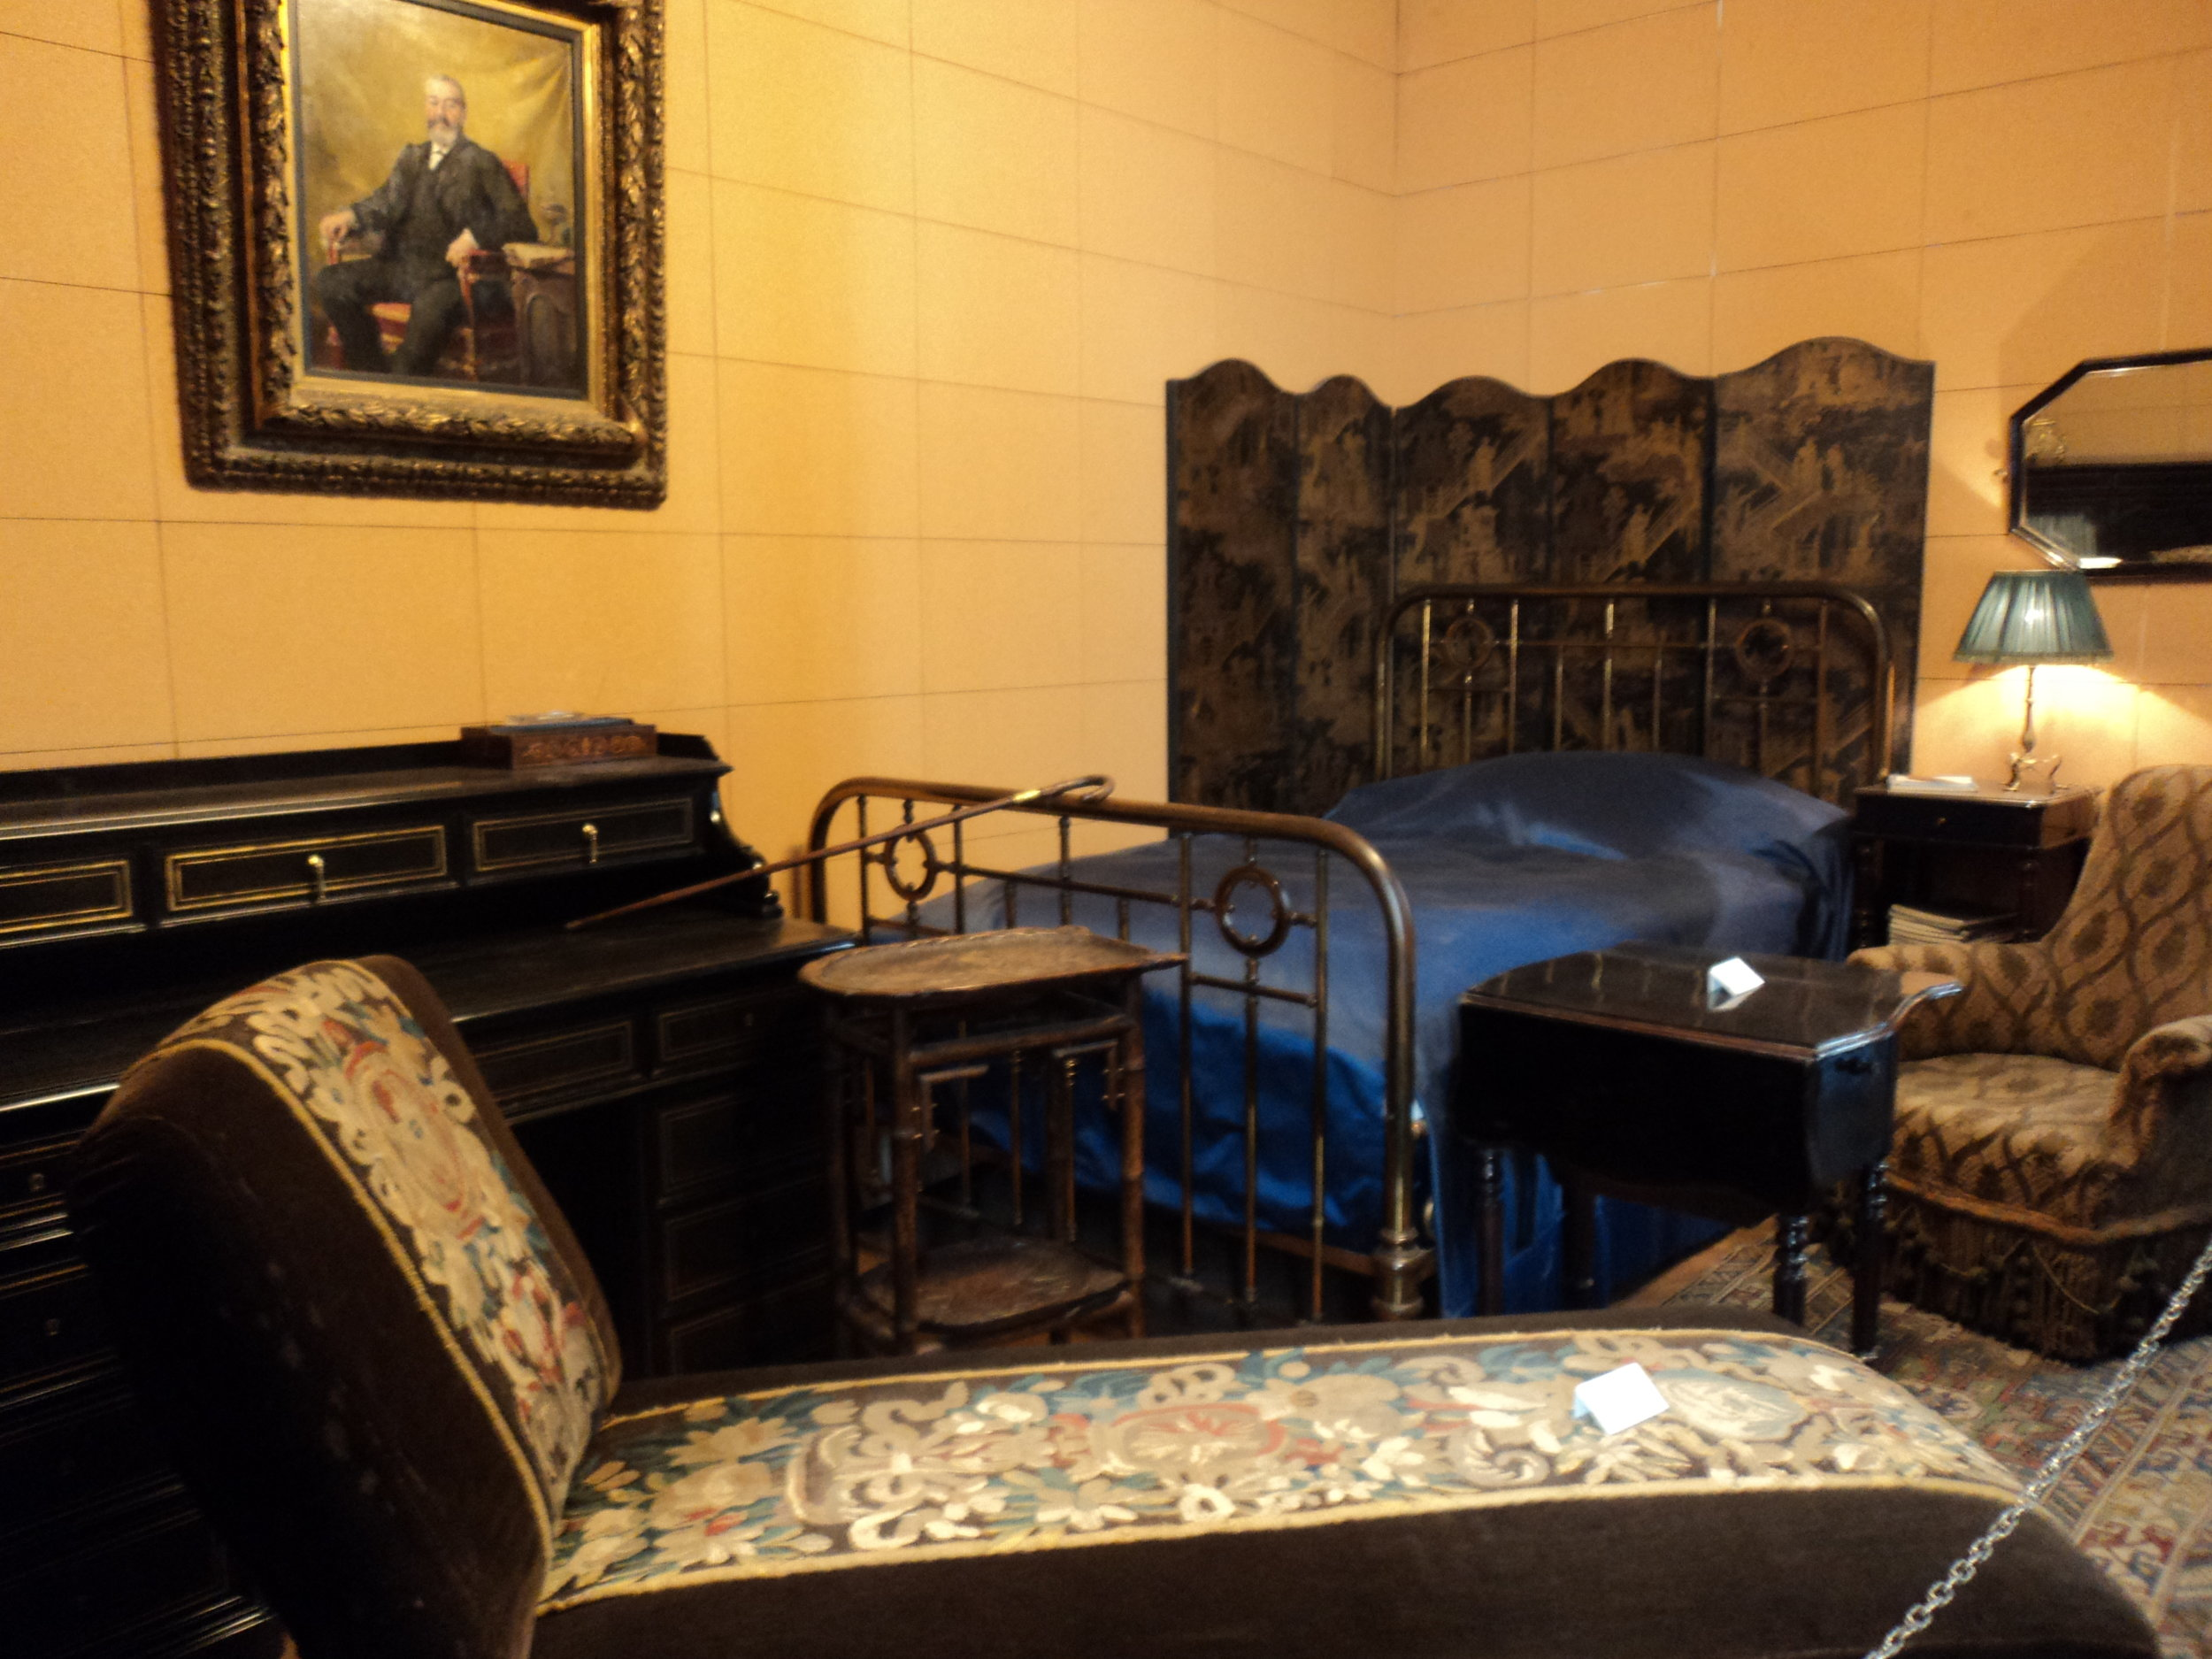 Marcel Proust's reconstructed bedroom in the Musée Carnavalet, Paris. (My photo, ca. 2011.)